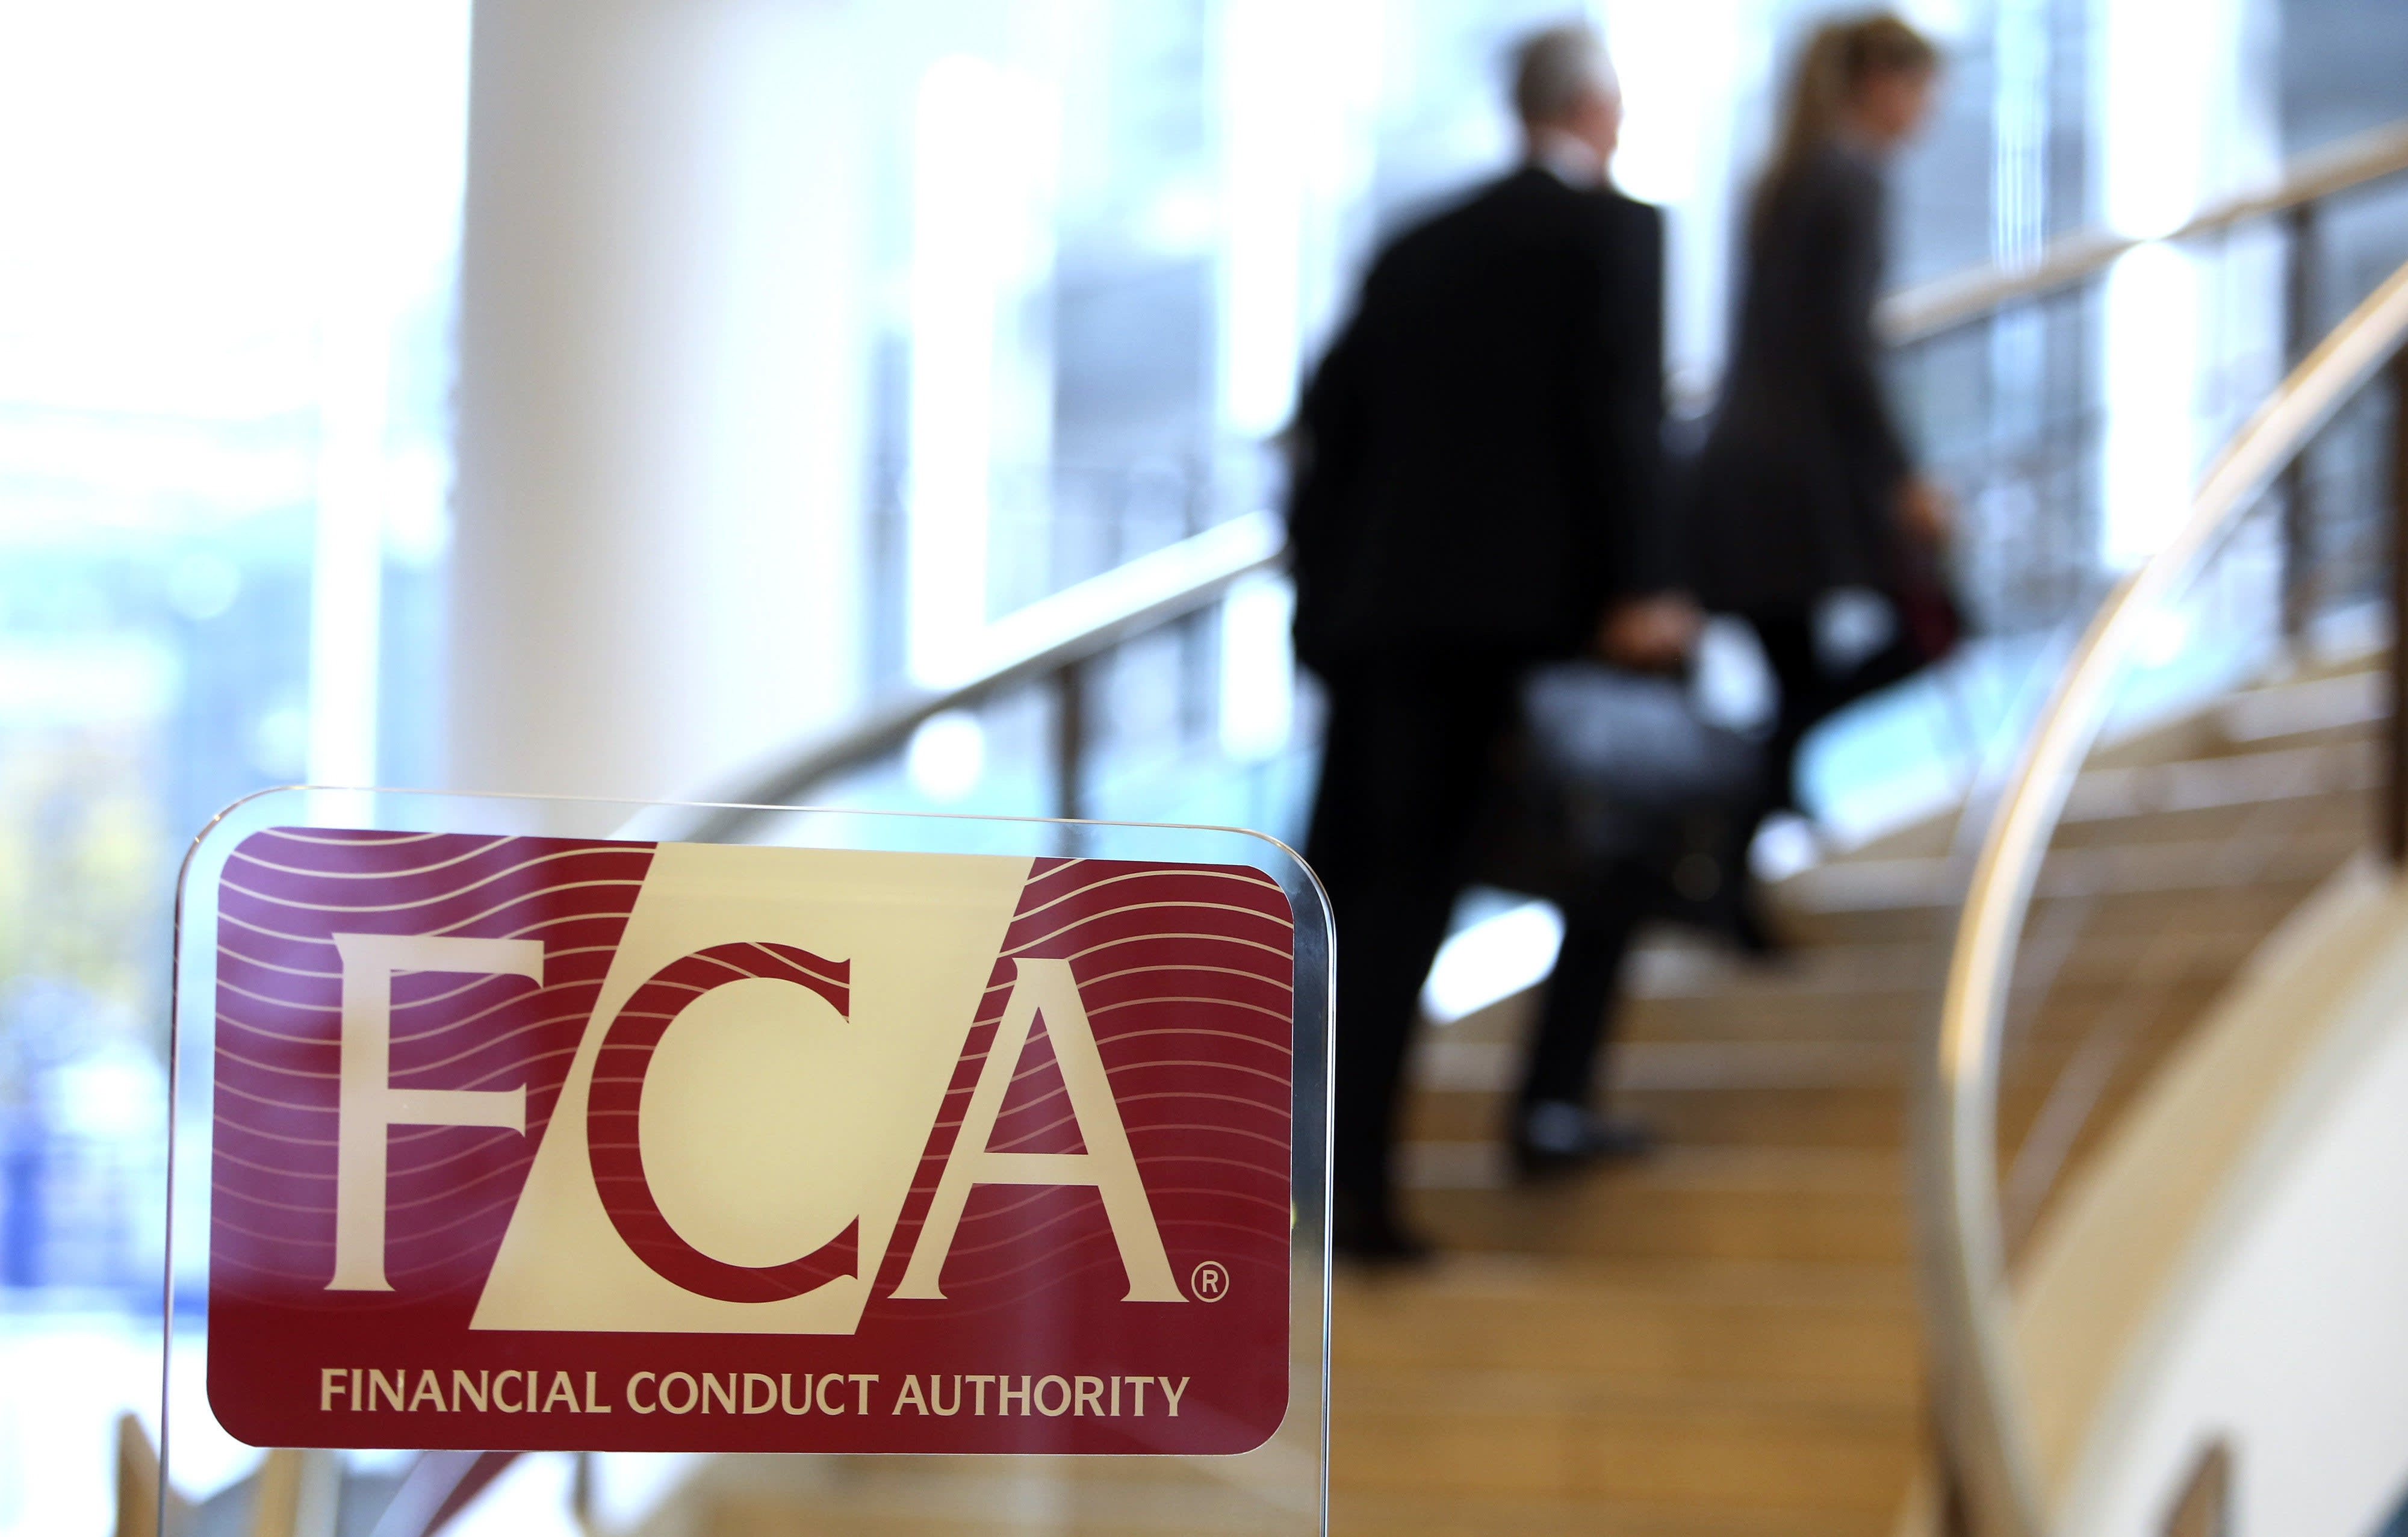 MPs call for FCA chief to resign